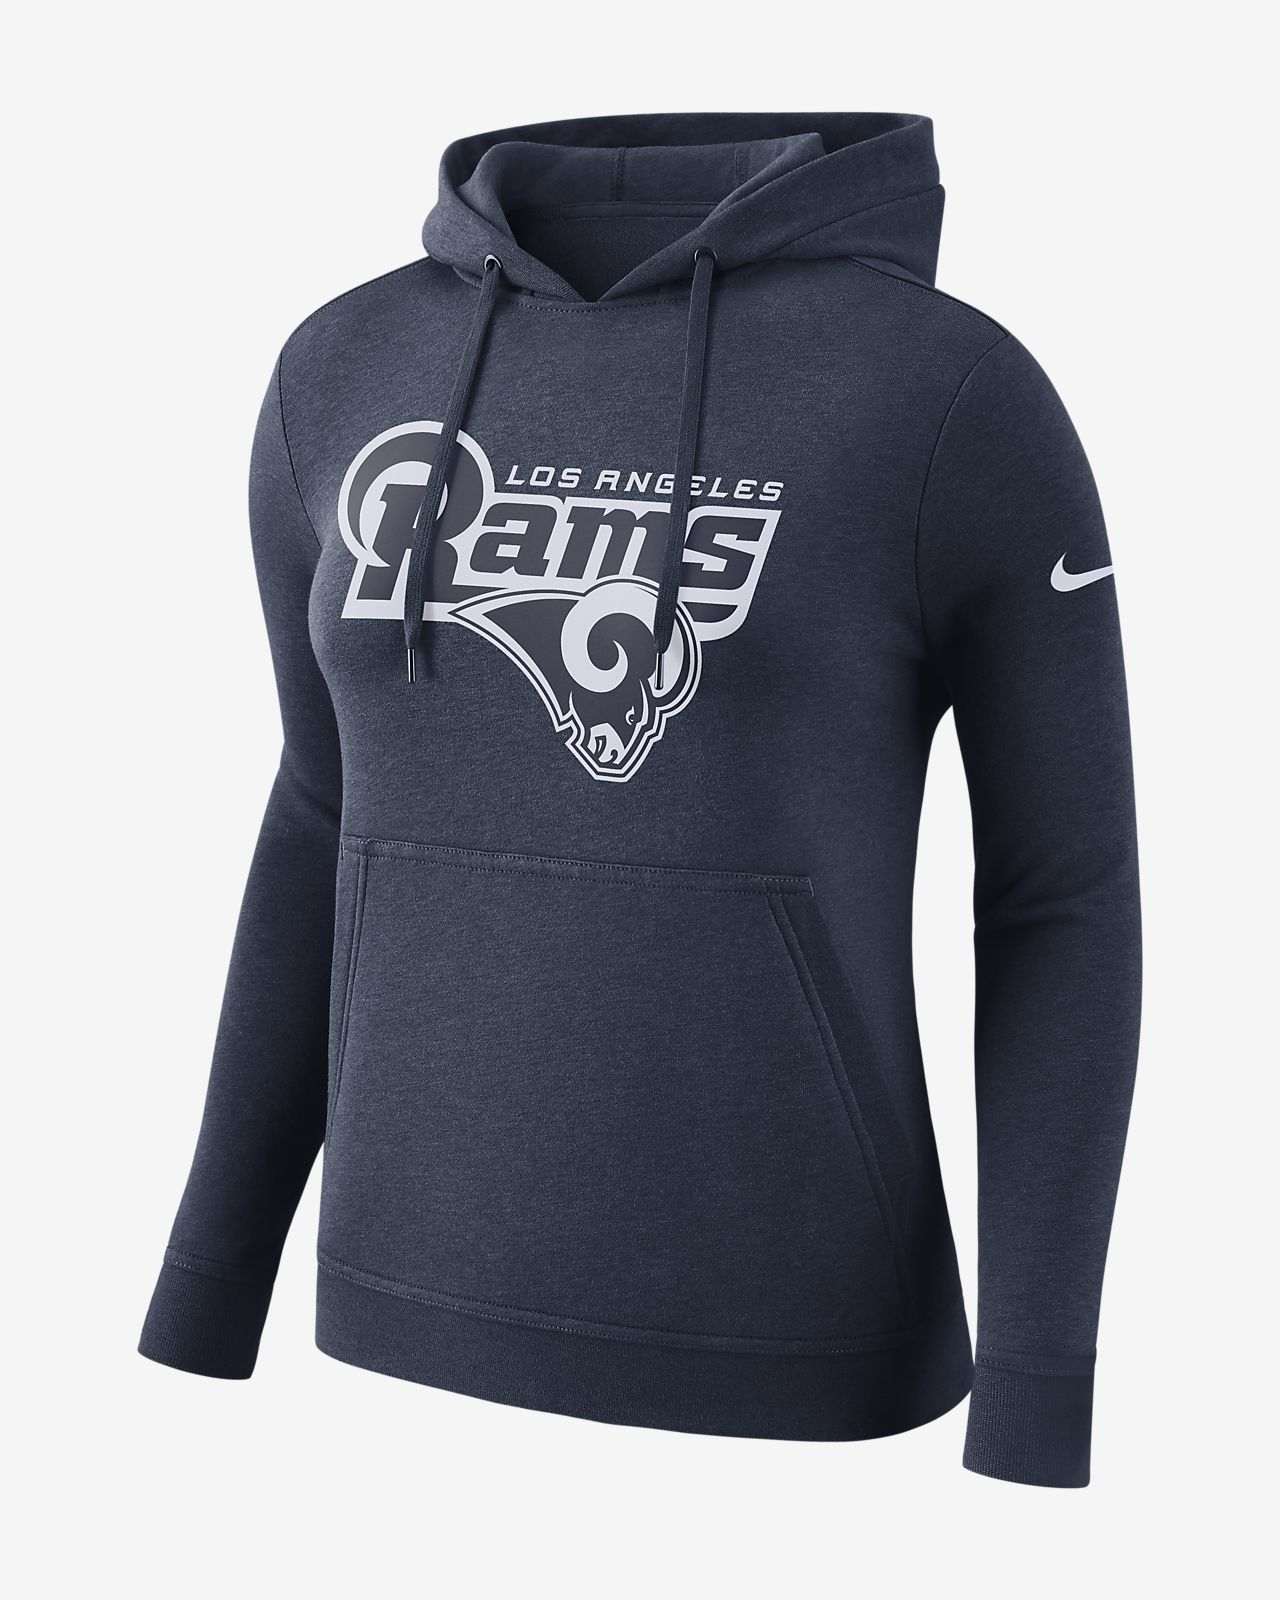 super popular a991e 7293f Nike Club Fleece (NFL Rams) Women's Fleece Pullover Hoodie